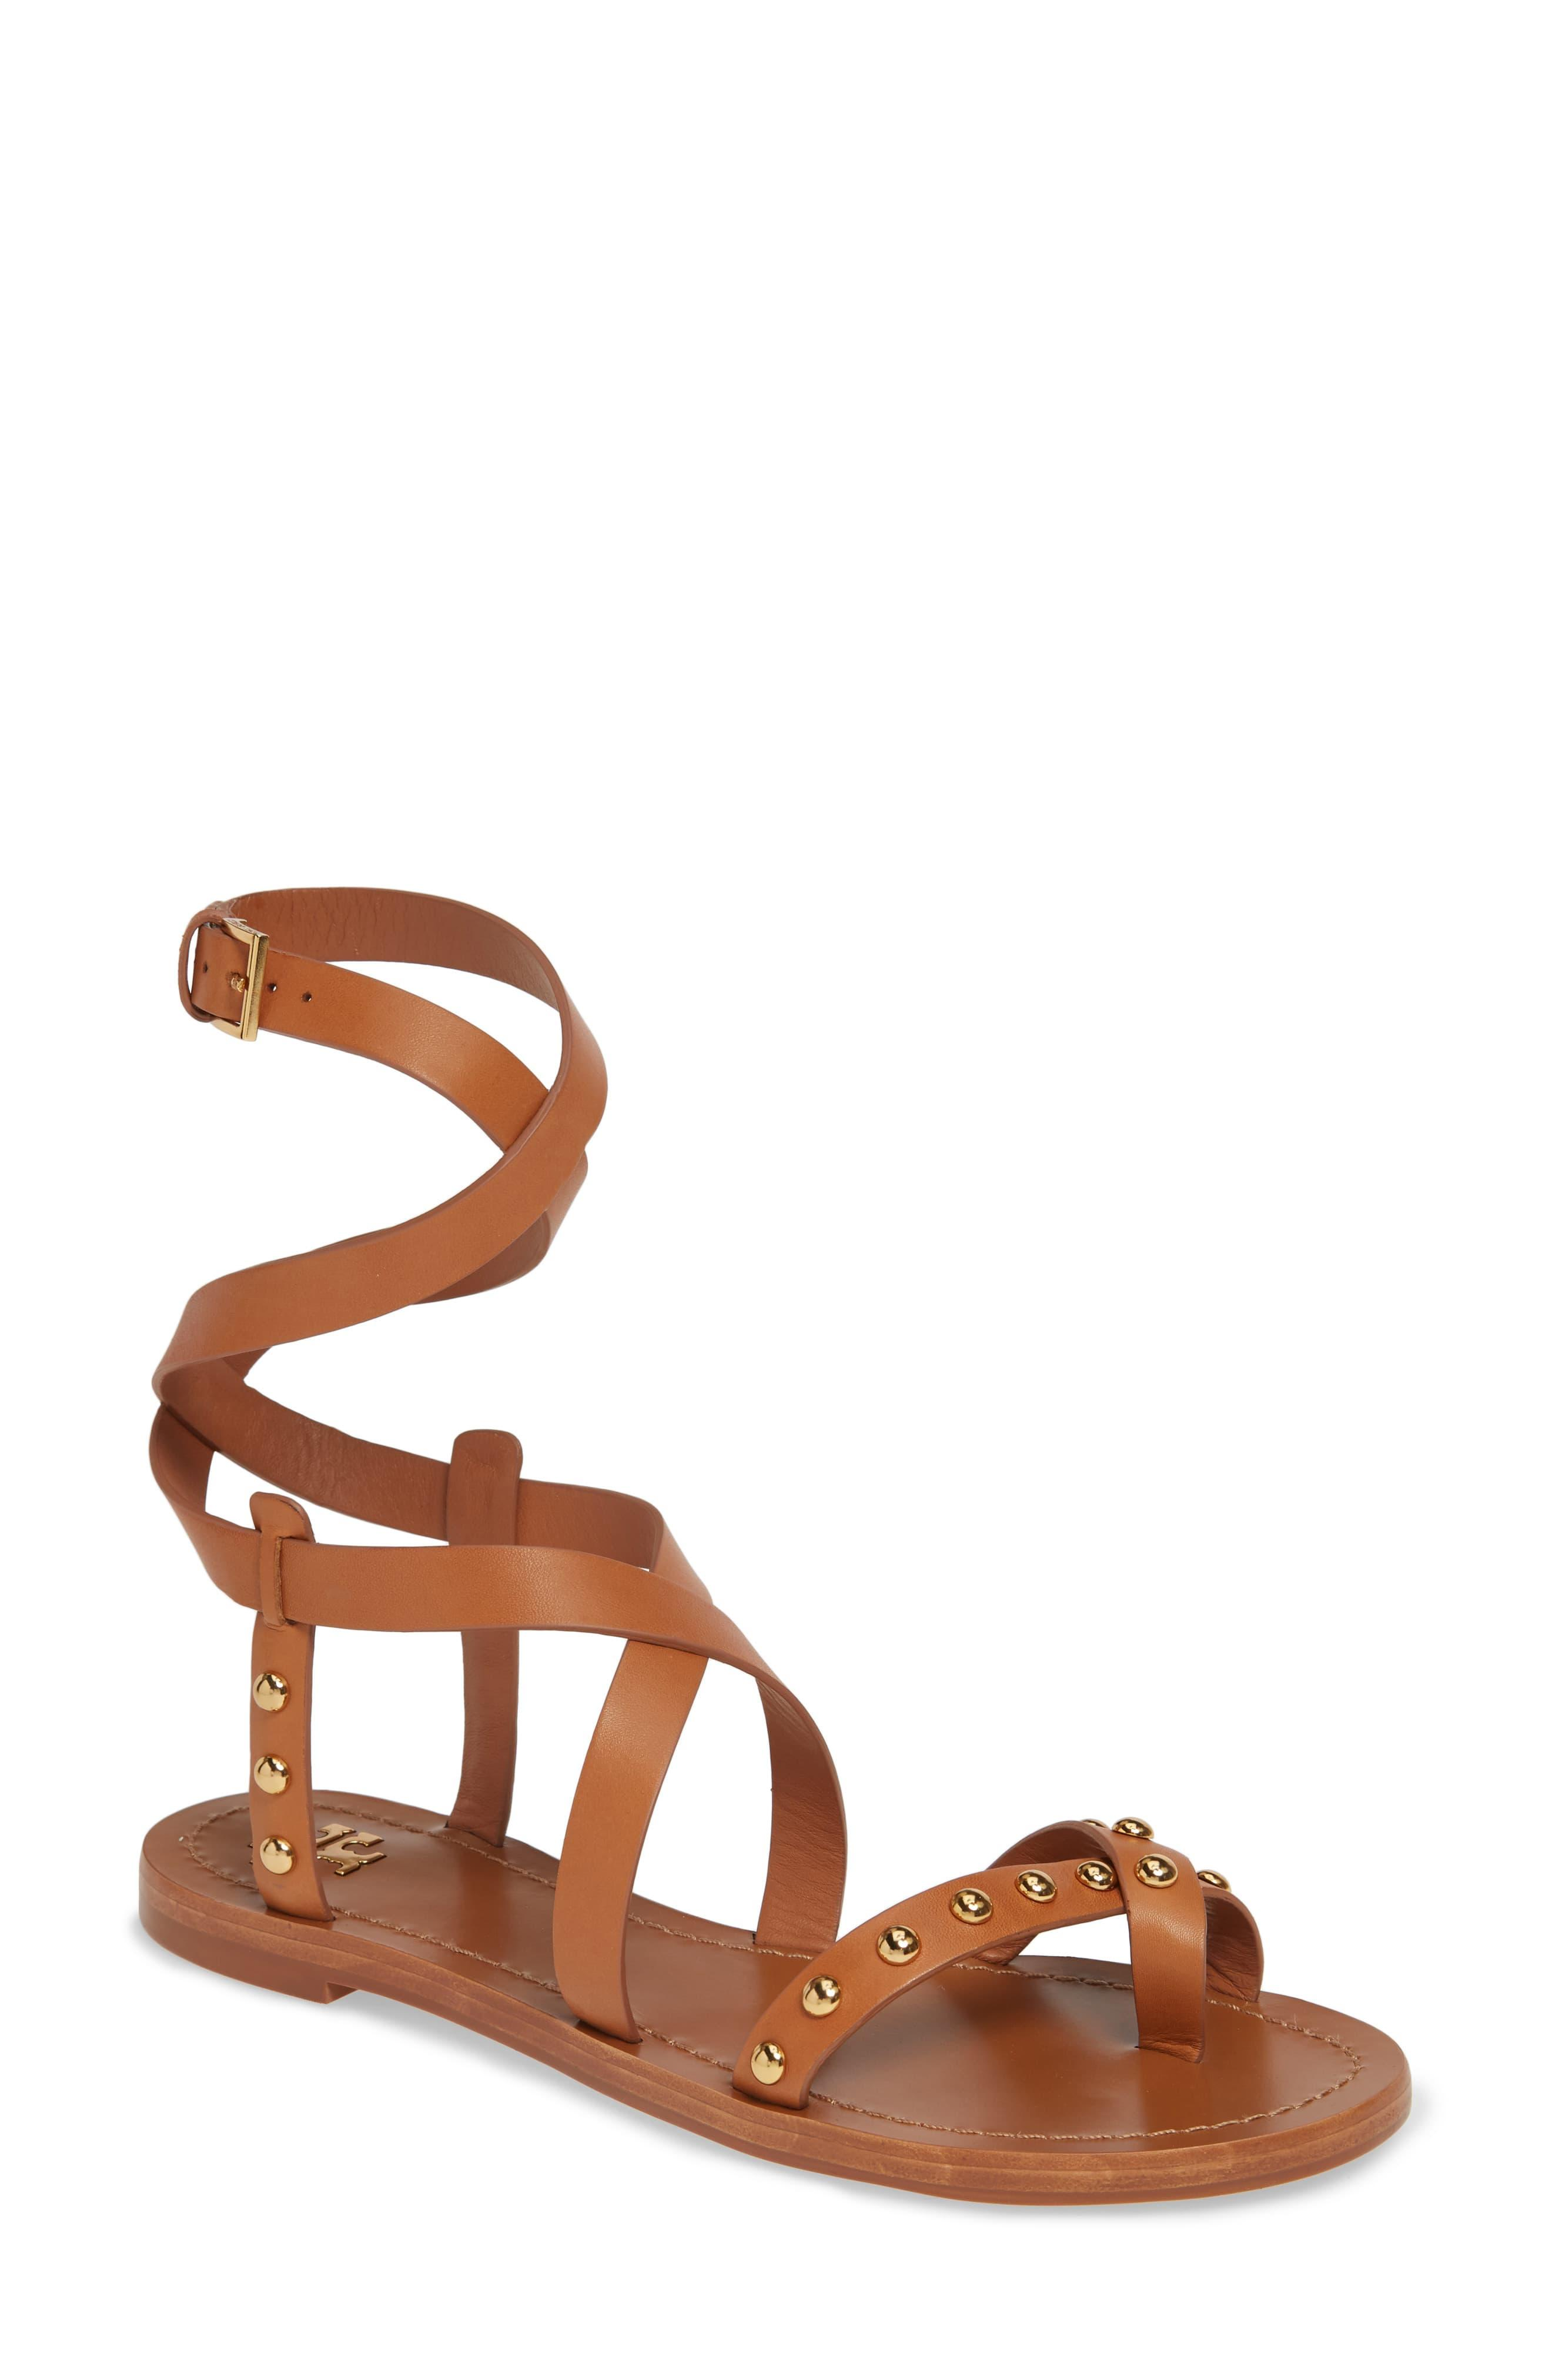 60a002551 Tory Burch Ravello Studded Cage Sandal in Brown - Lyst